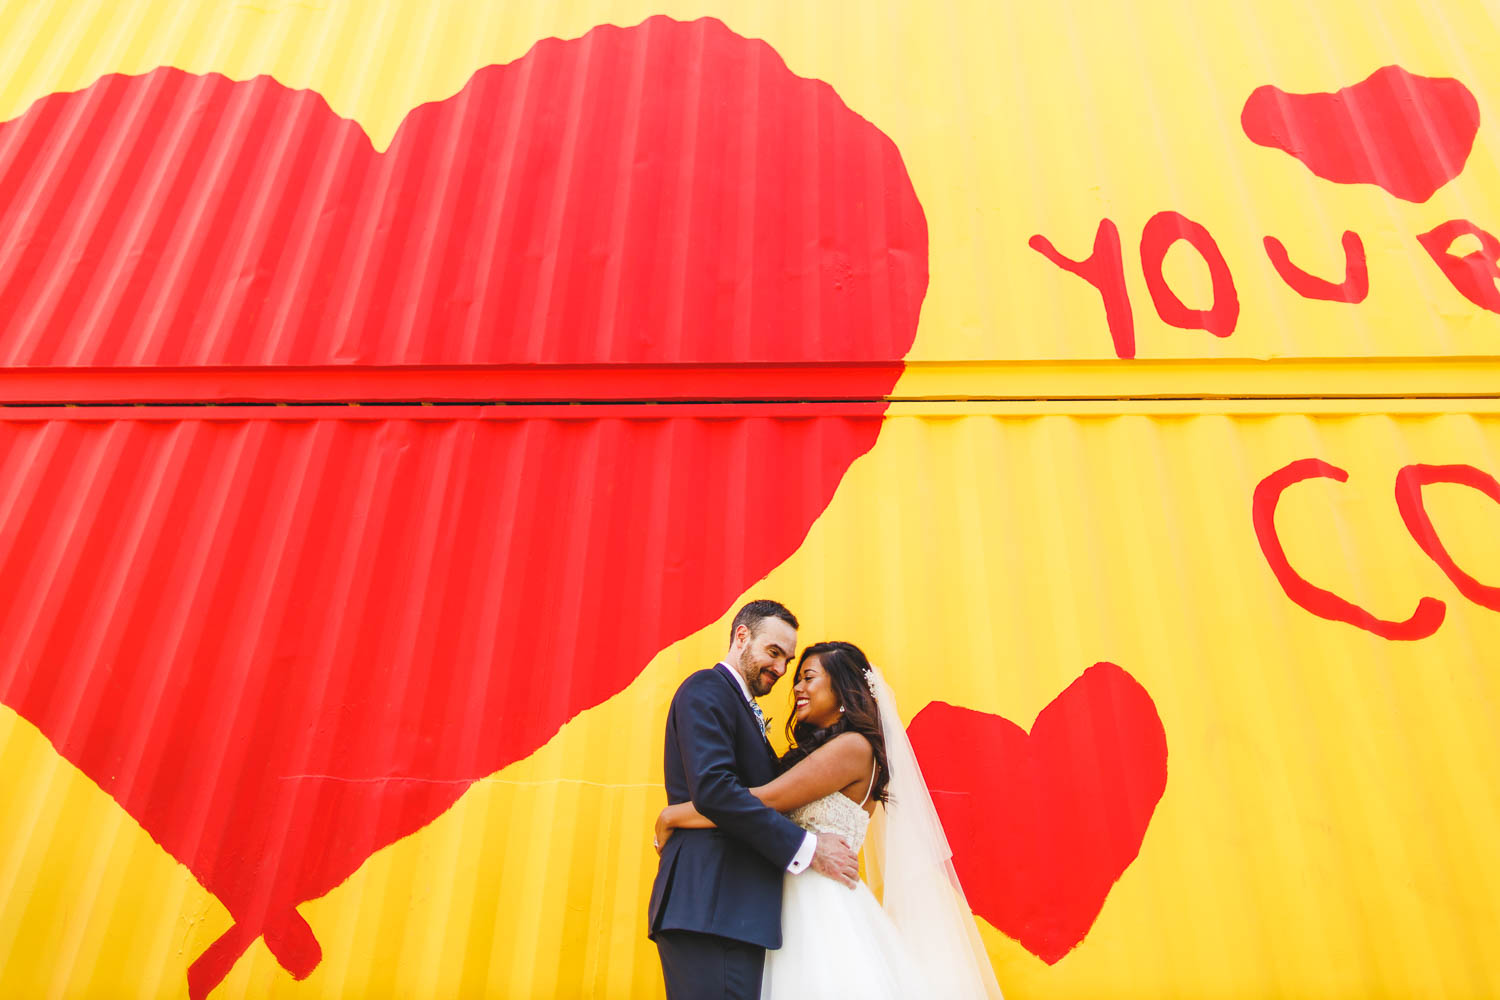 Colorful mural with bride and groom